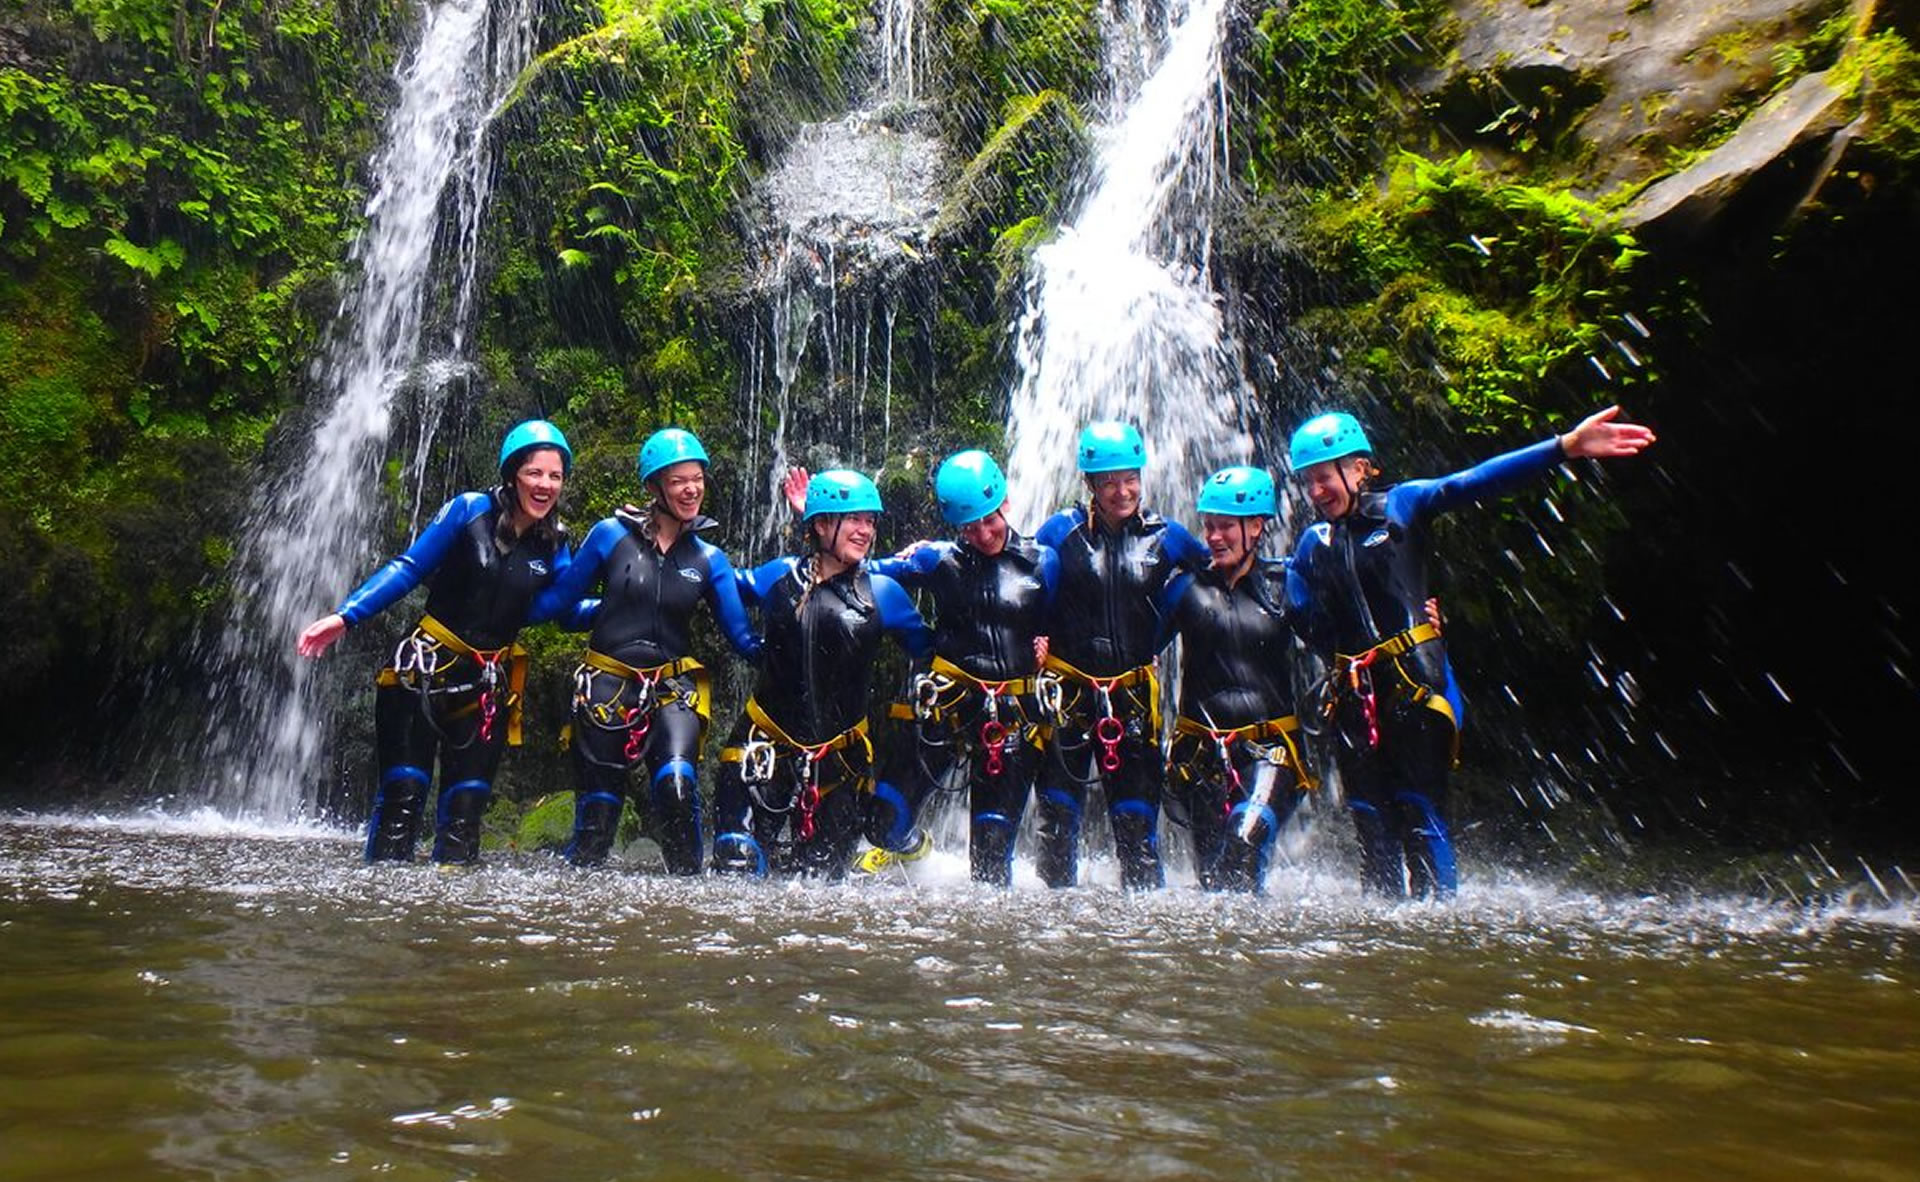 S.MIGUEL: CANYONING CALDEIRÕES